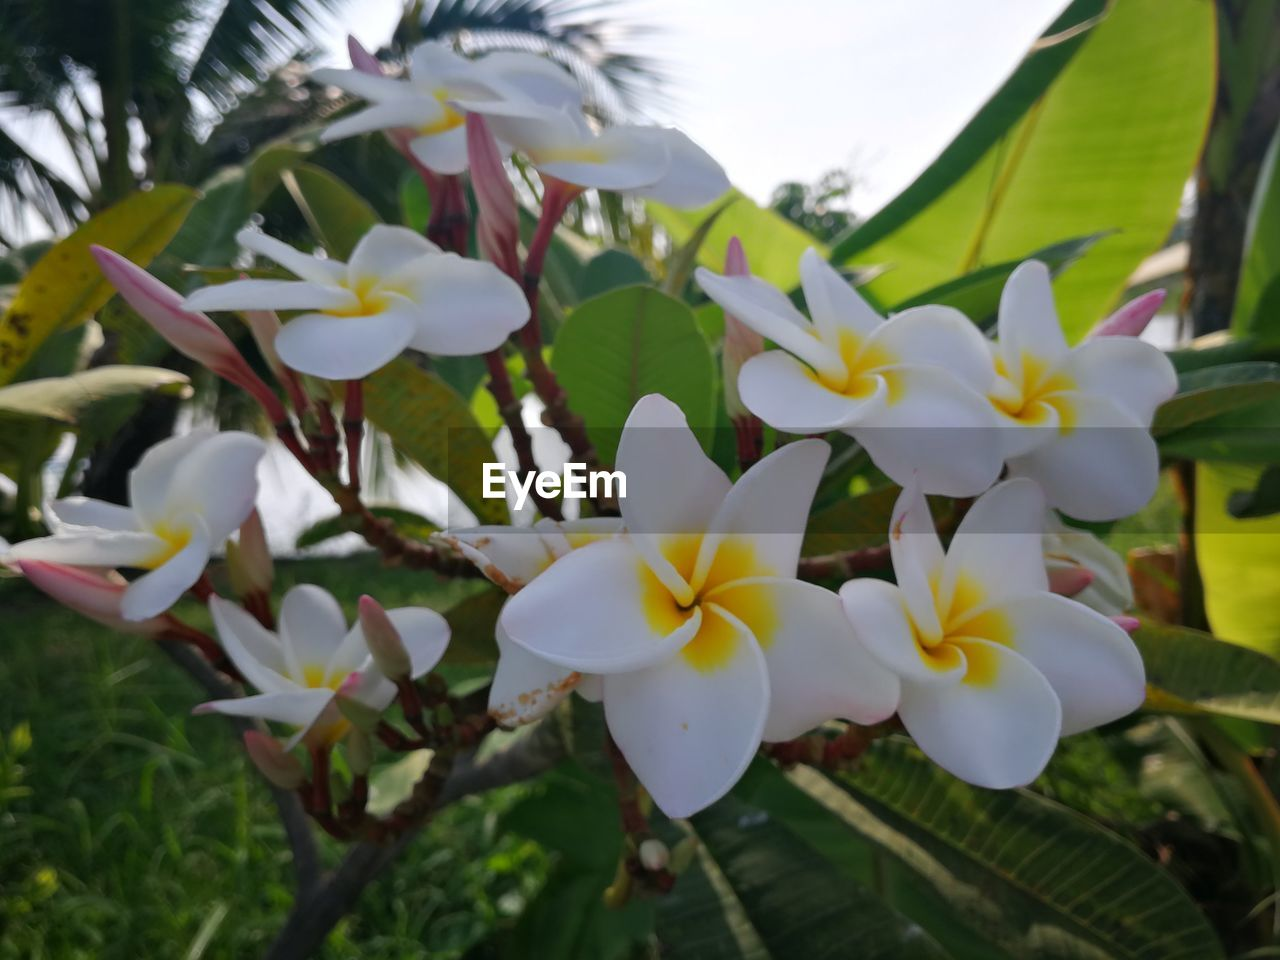 flower, flowering plant, plant, beauty in nature, freshness, vulnerability, fragility, growth, petal, flower head, white color, inflorescence, close-up, nature, frangipani, no people, day, focus on foreground, outdoors, botany